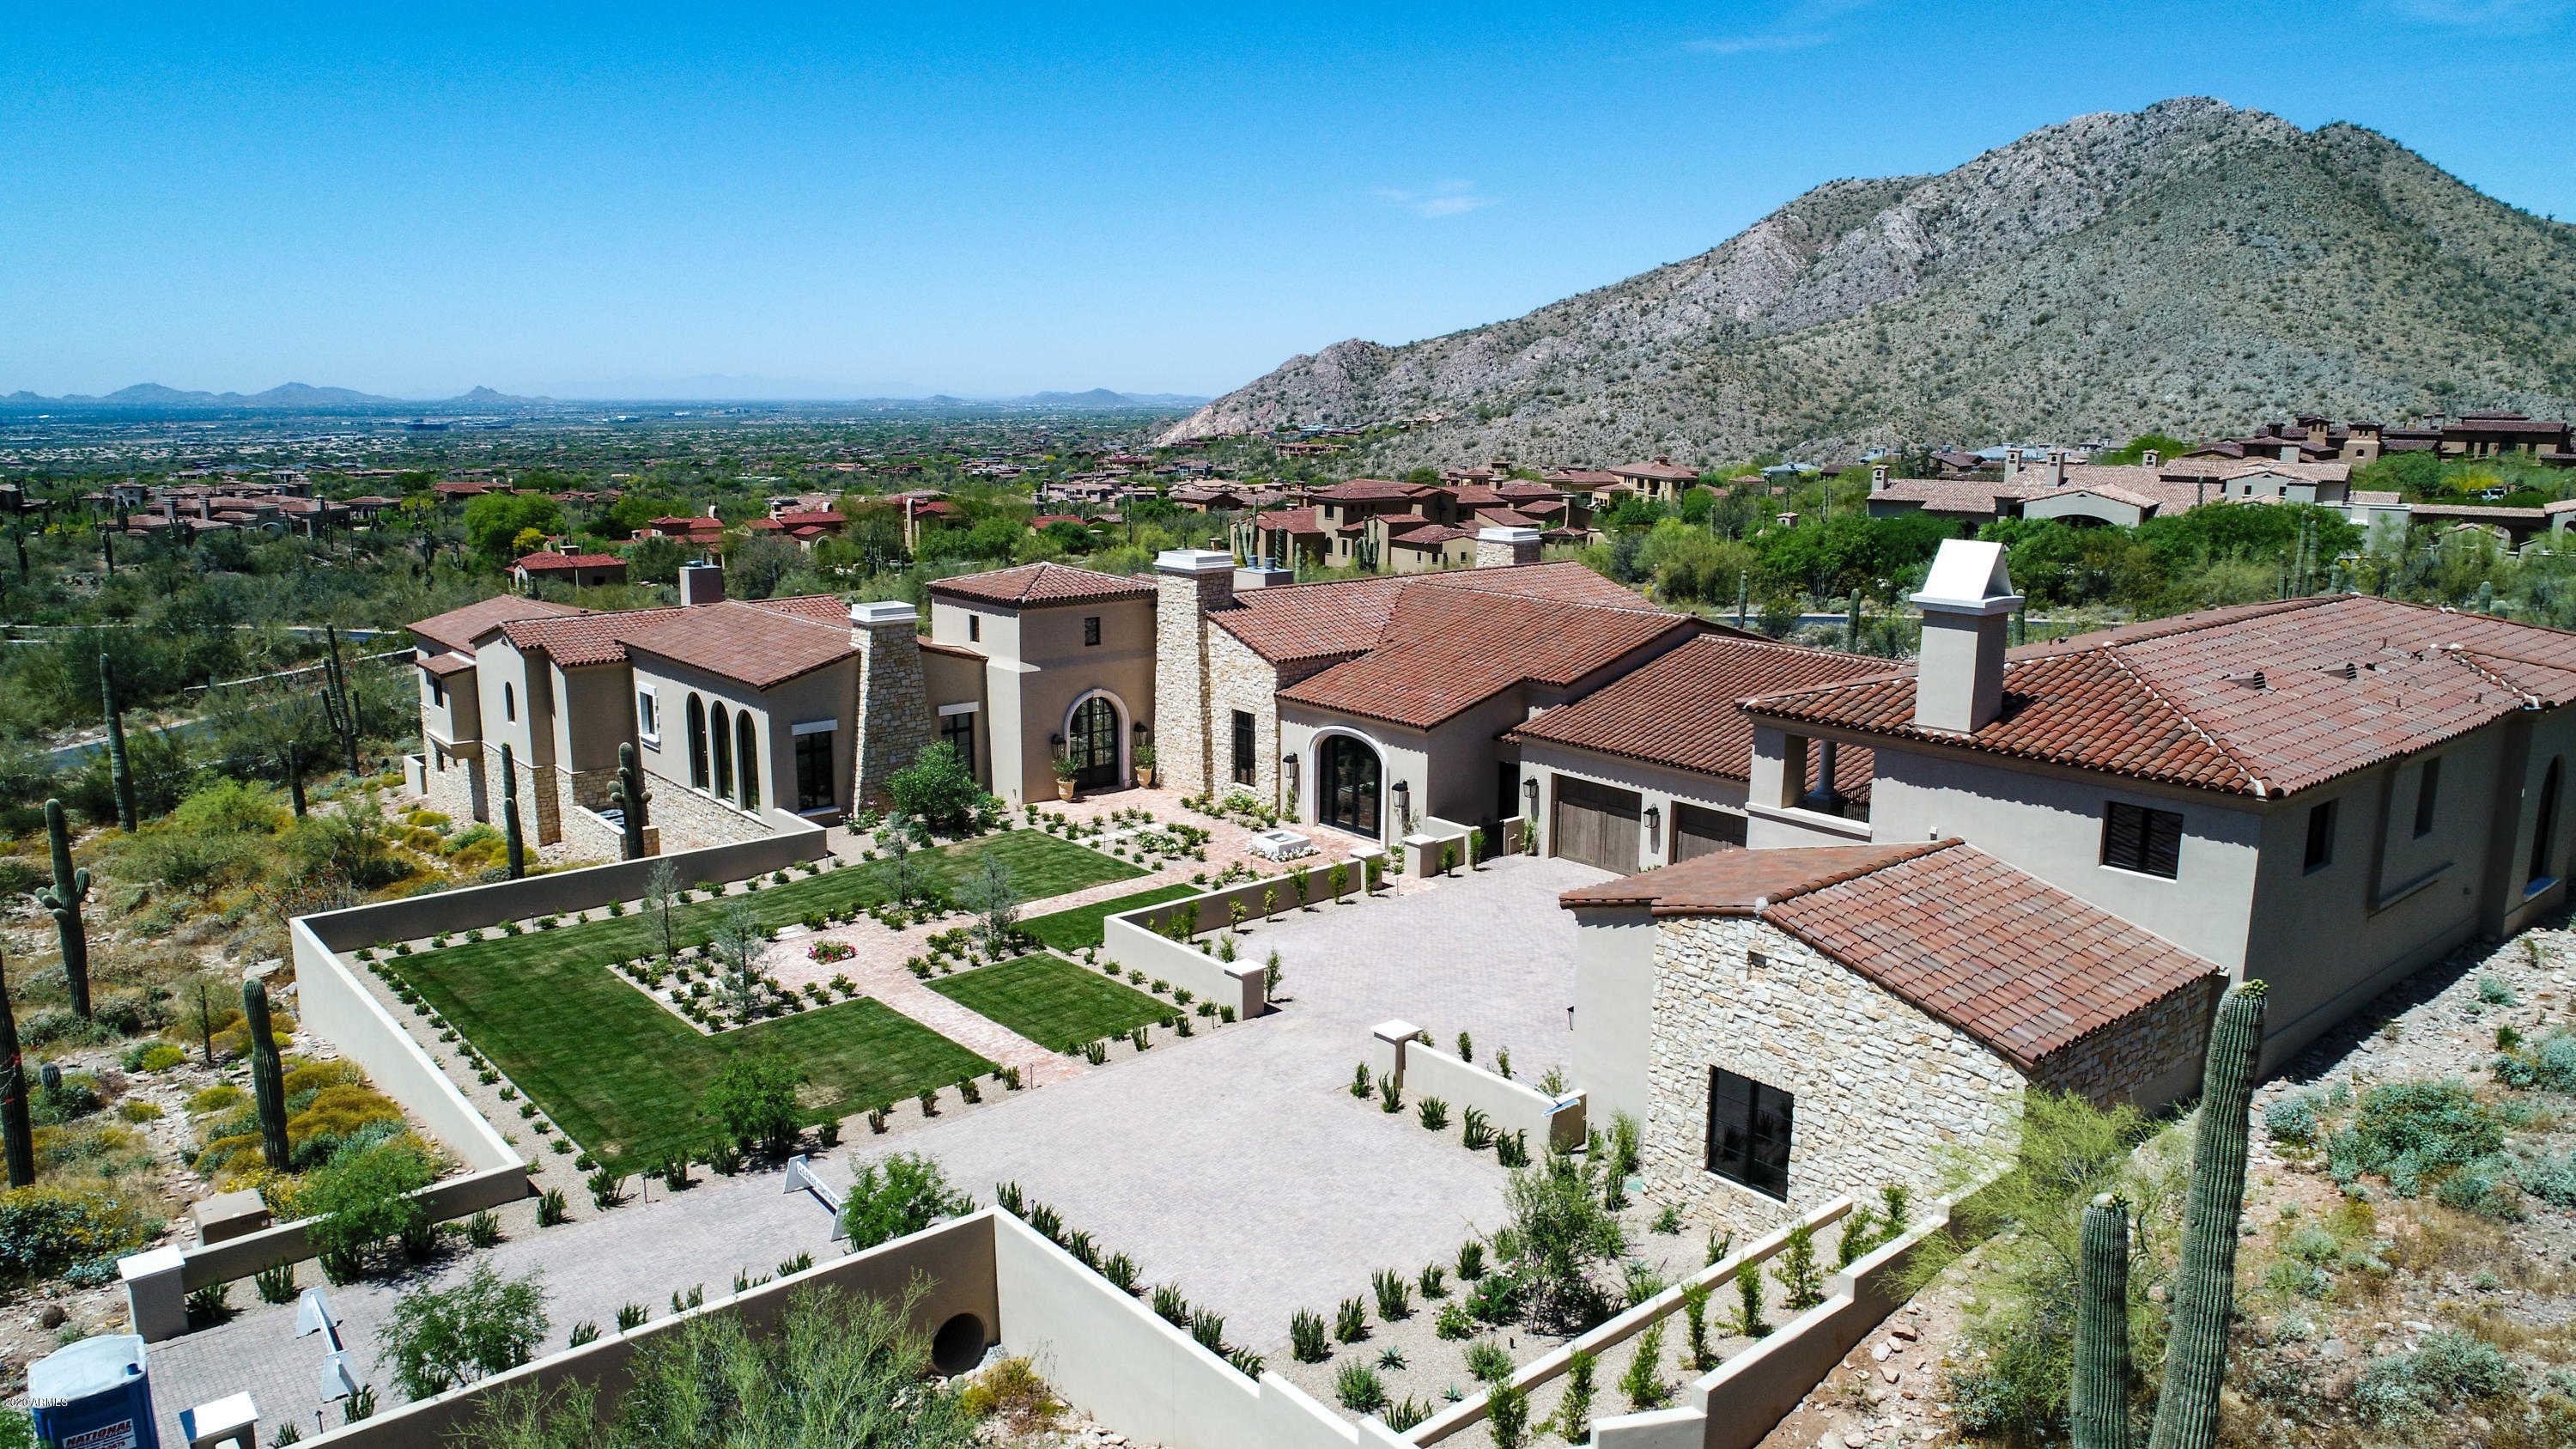 $8,700,000 - 5Br/8Ba - Home for Sale in Silverleaf, Scottsdale